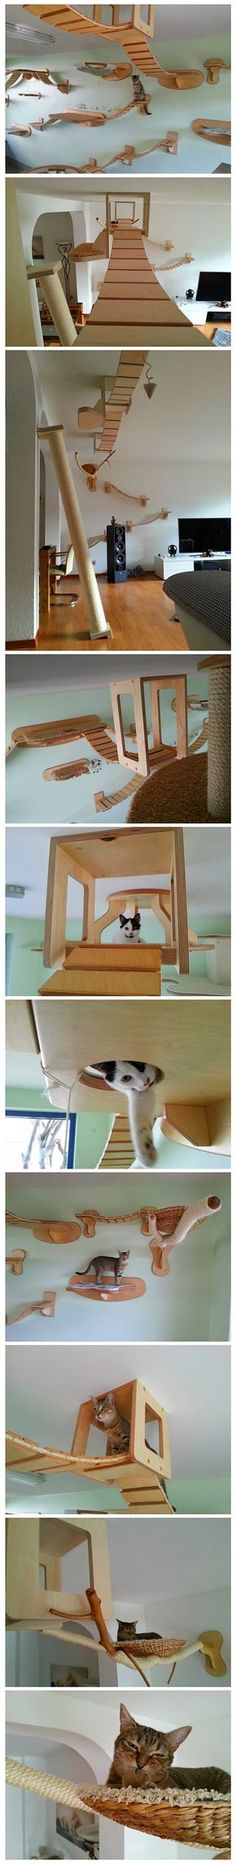 German design company Goldtatze (Gold Paw) specializes in transforming ordinary rooms into overhead playgrounds for cats. By adding wooden bridges, hammocks, scratching posts, and even little dens for cats to hide out in, each site-specific installation offers playful felines plenty of room for adventurous activity and their much needed catnaps. This is too funny. Spoiled kitties.